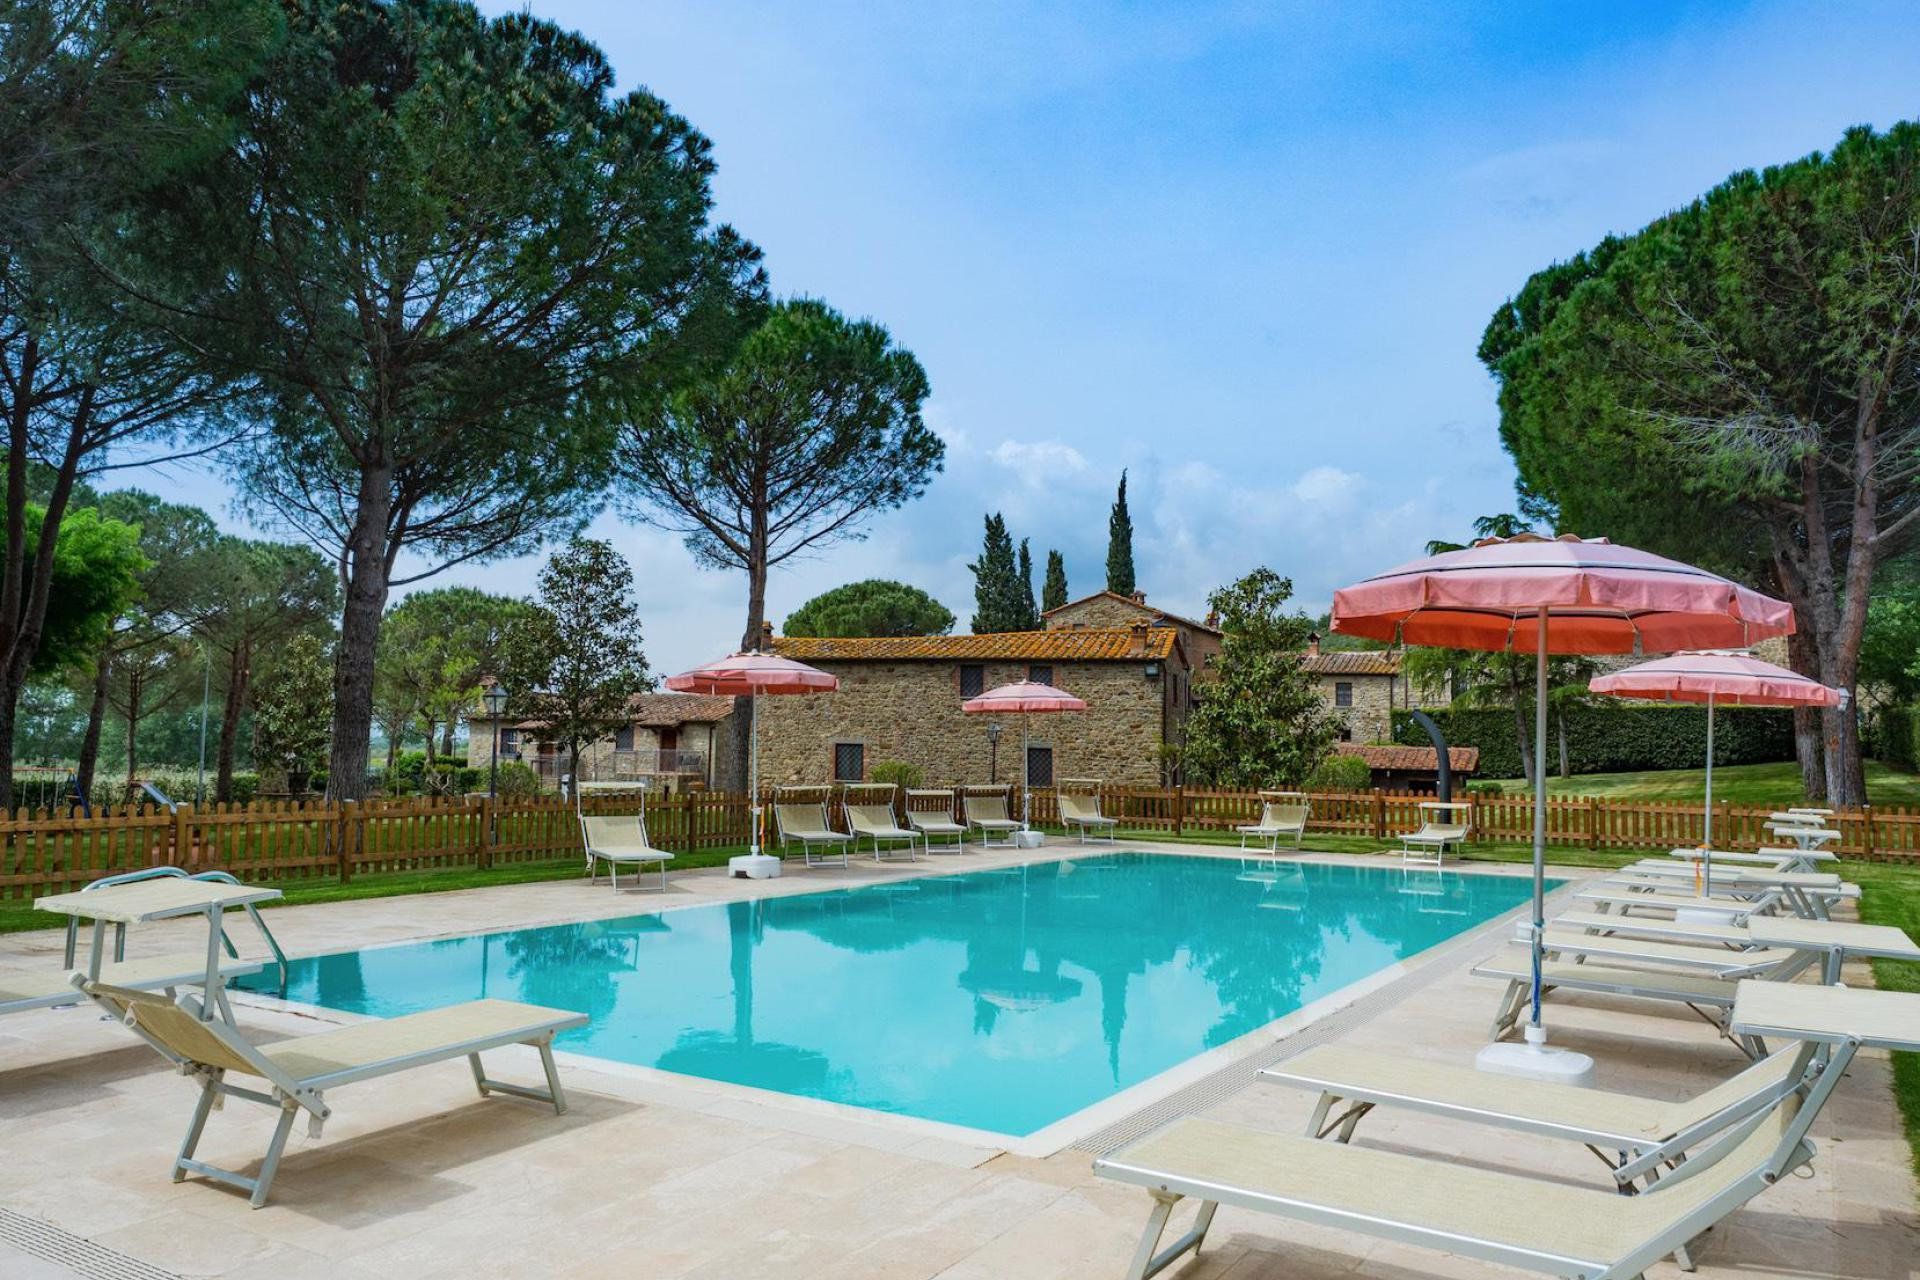 Agriturismo Puglia Private trullo with pool in olive orchard